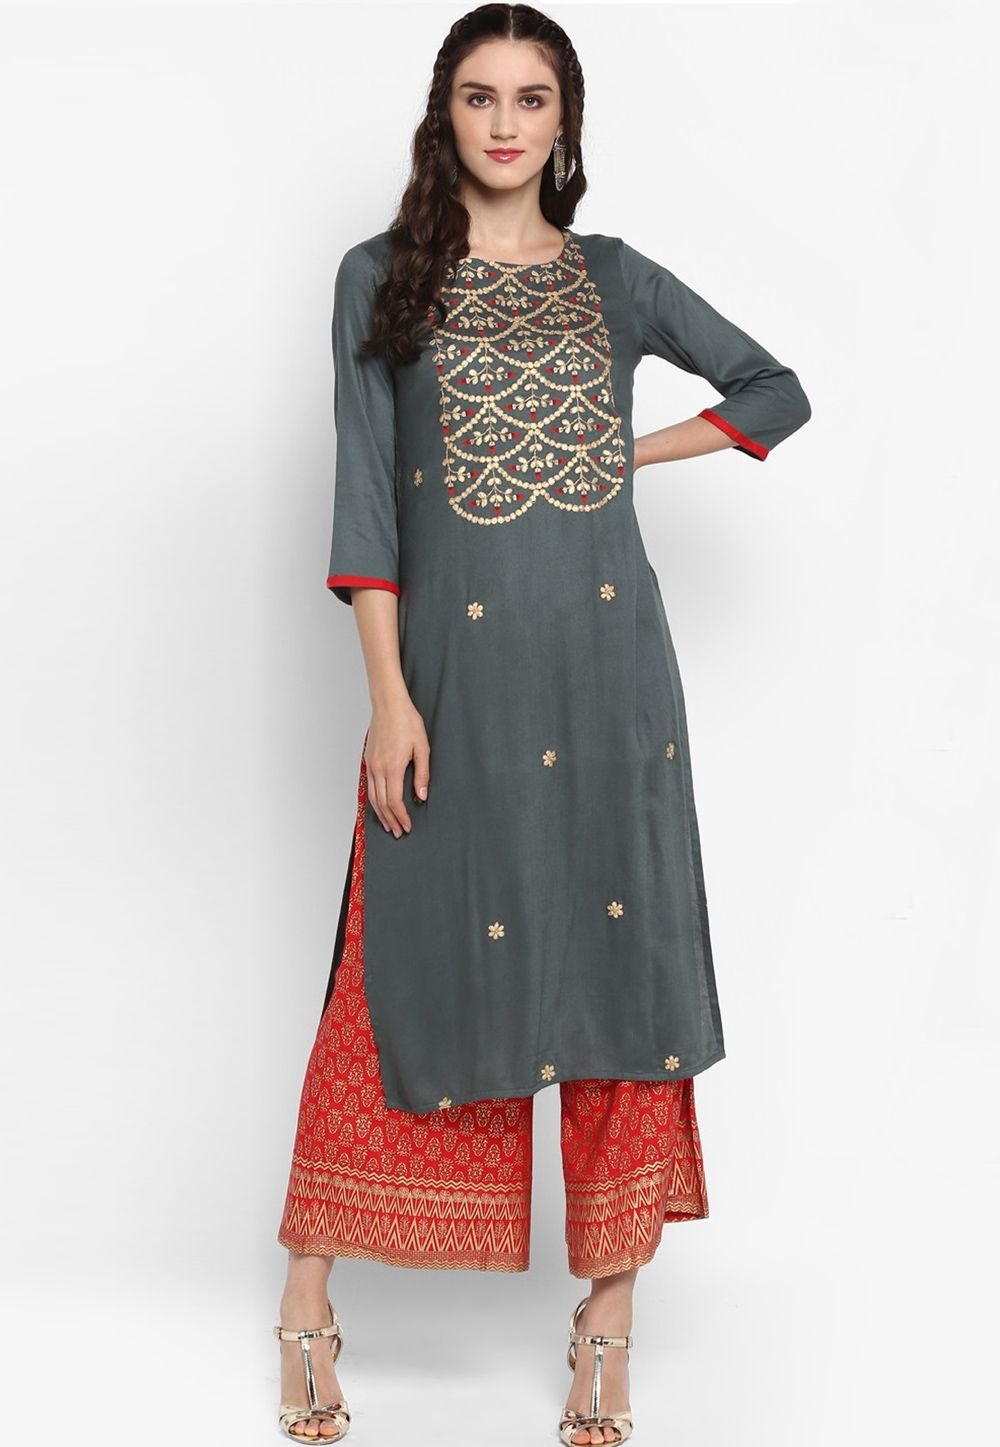 3a29ebda60 Shop Gray Viscose Readymade Kurti 161316 online at best price from vast  collection of designer kurti at Indianclothstore.com.